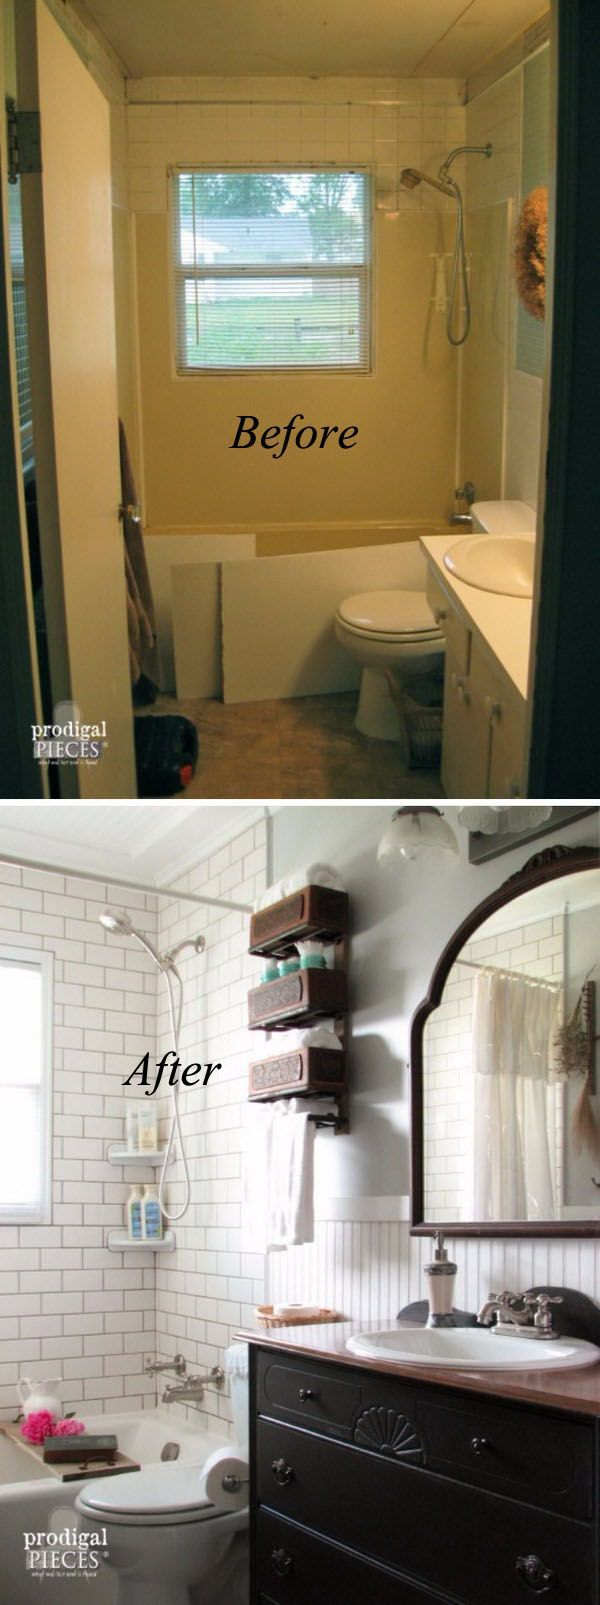 424 best bathroom inspiration images on pinterest bathroom ideas before and after 20 awesome bathroom makeovers